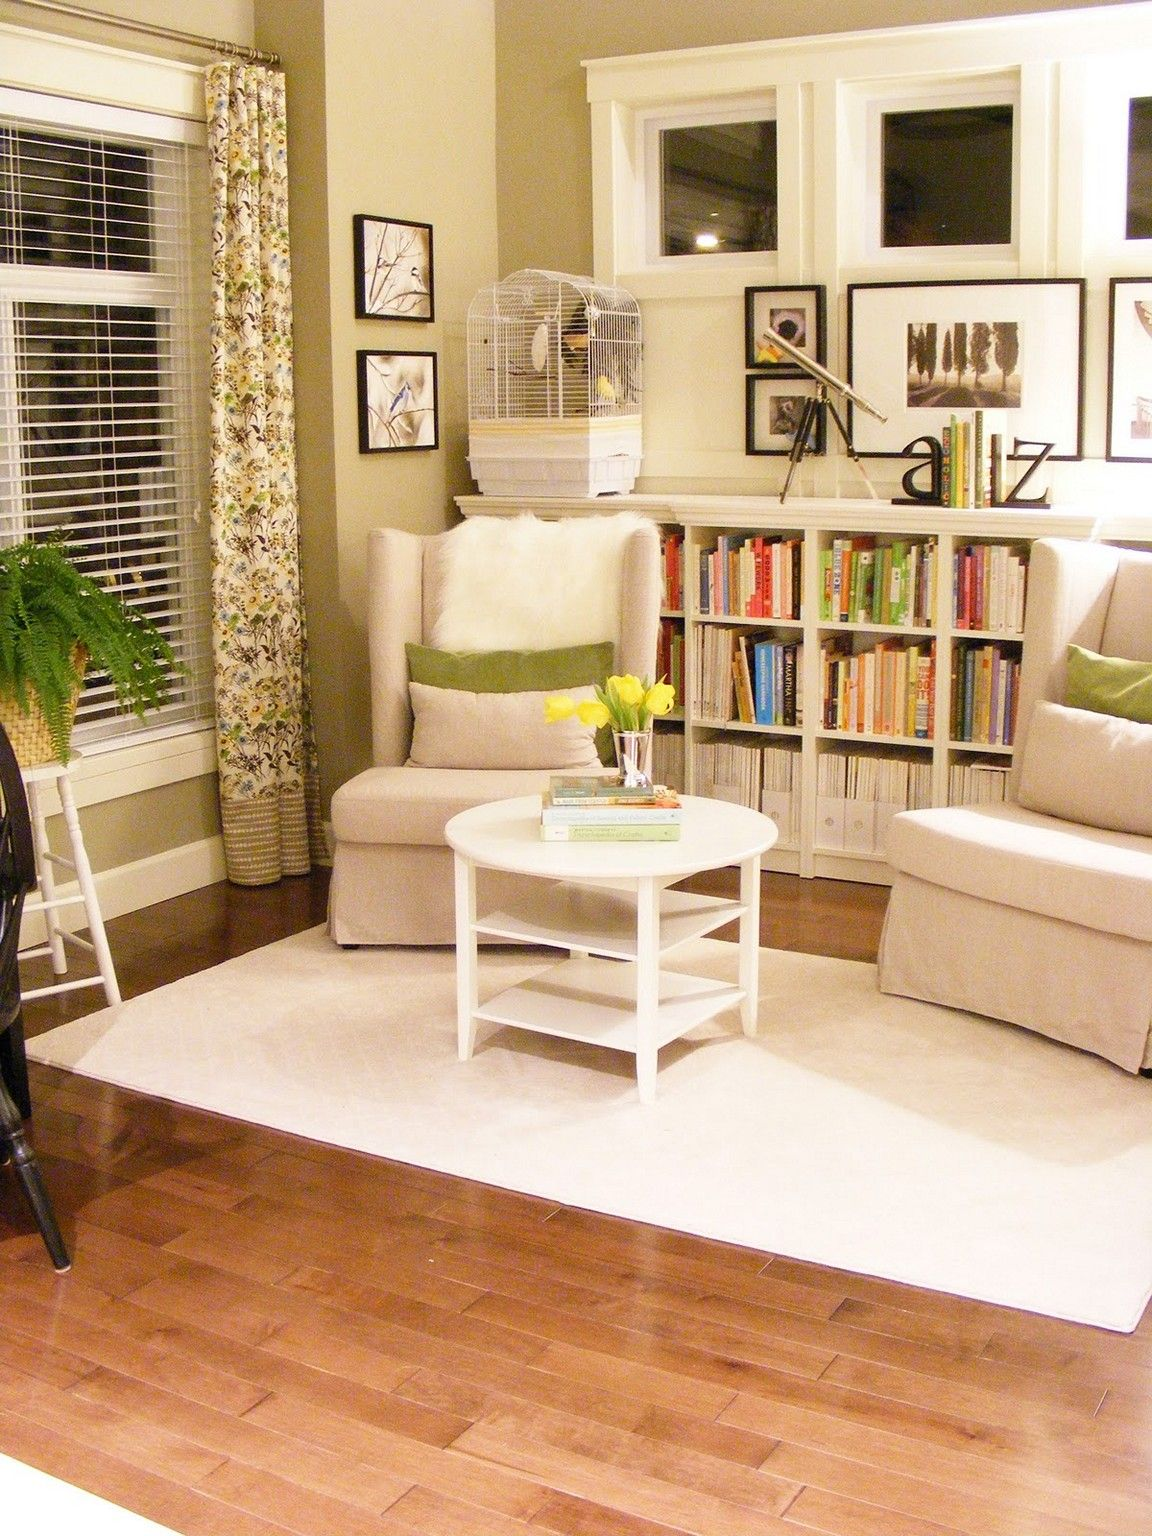 Office Workspace Terrific Bisque Home Library Design Eas Decor Decoration Living Room